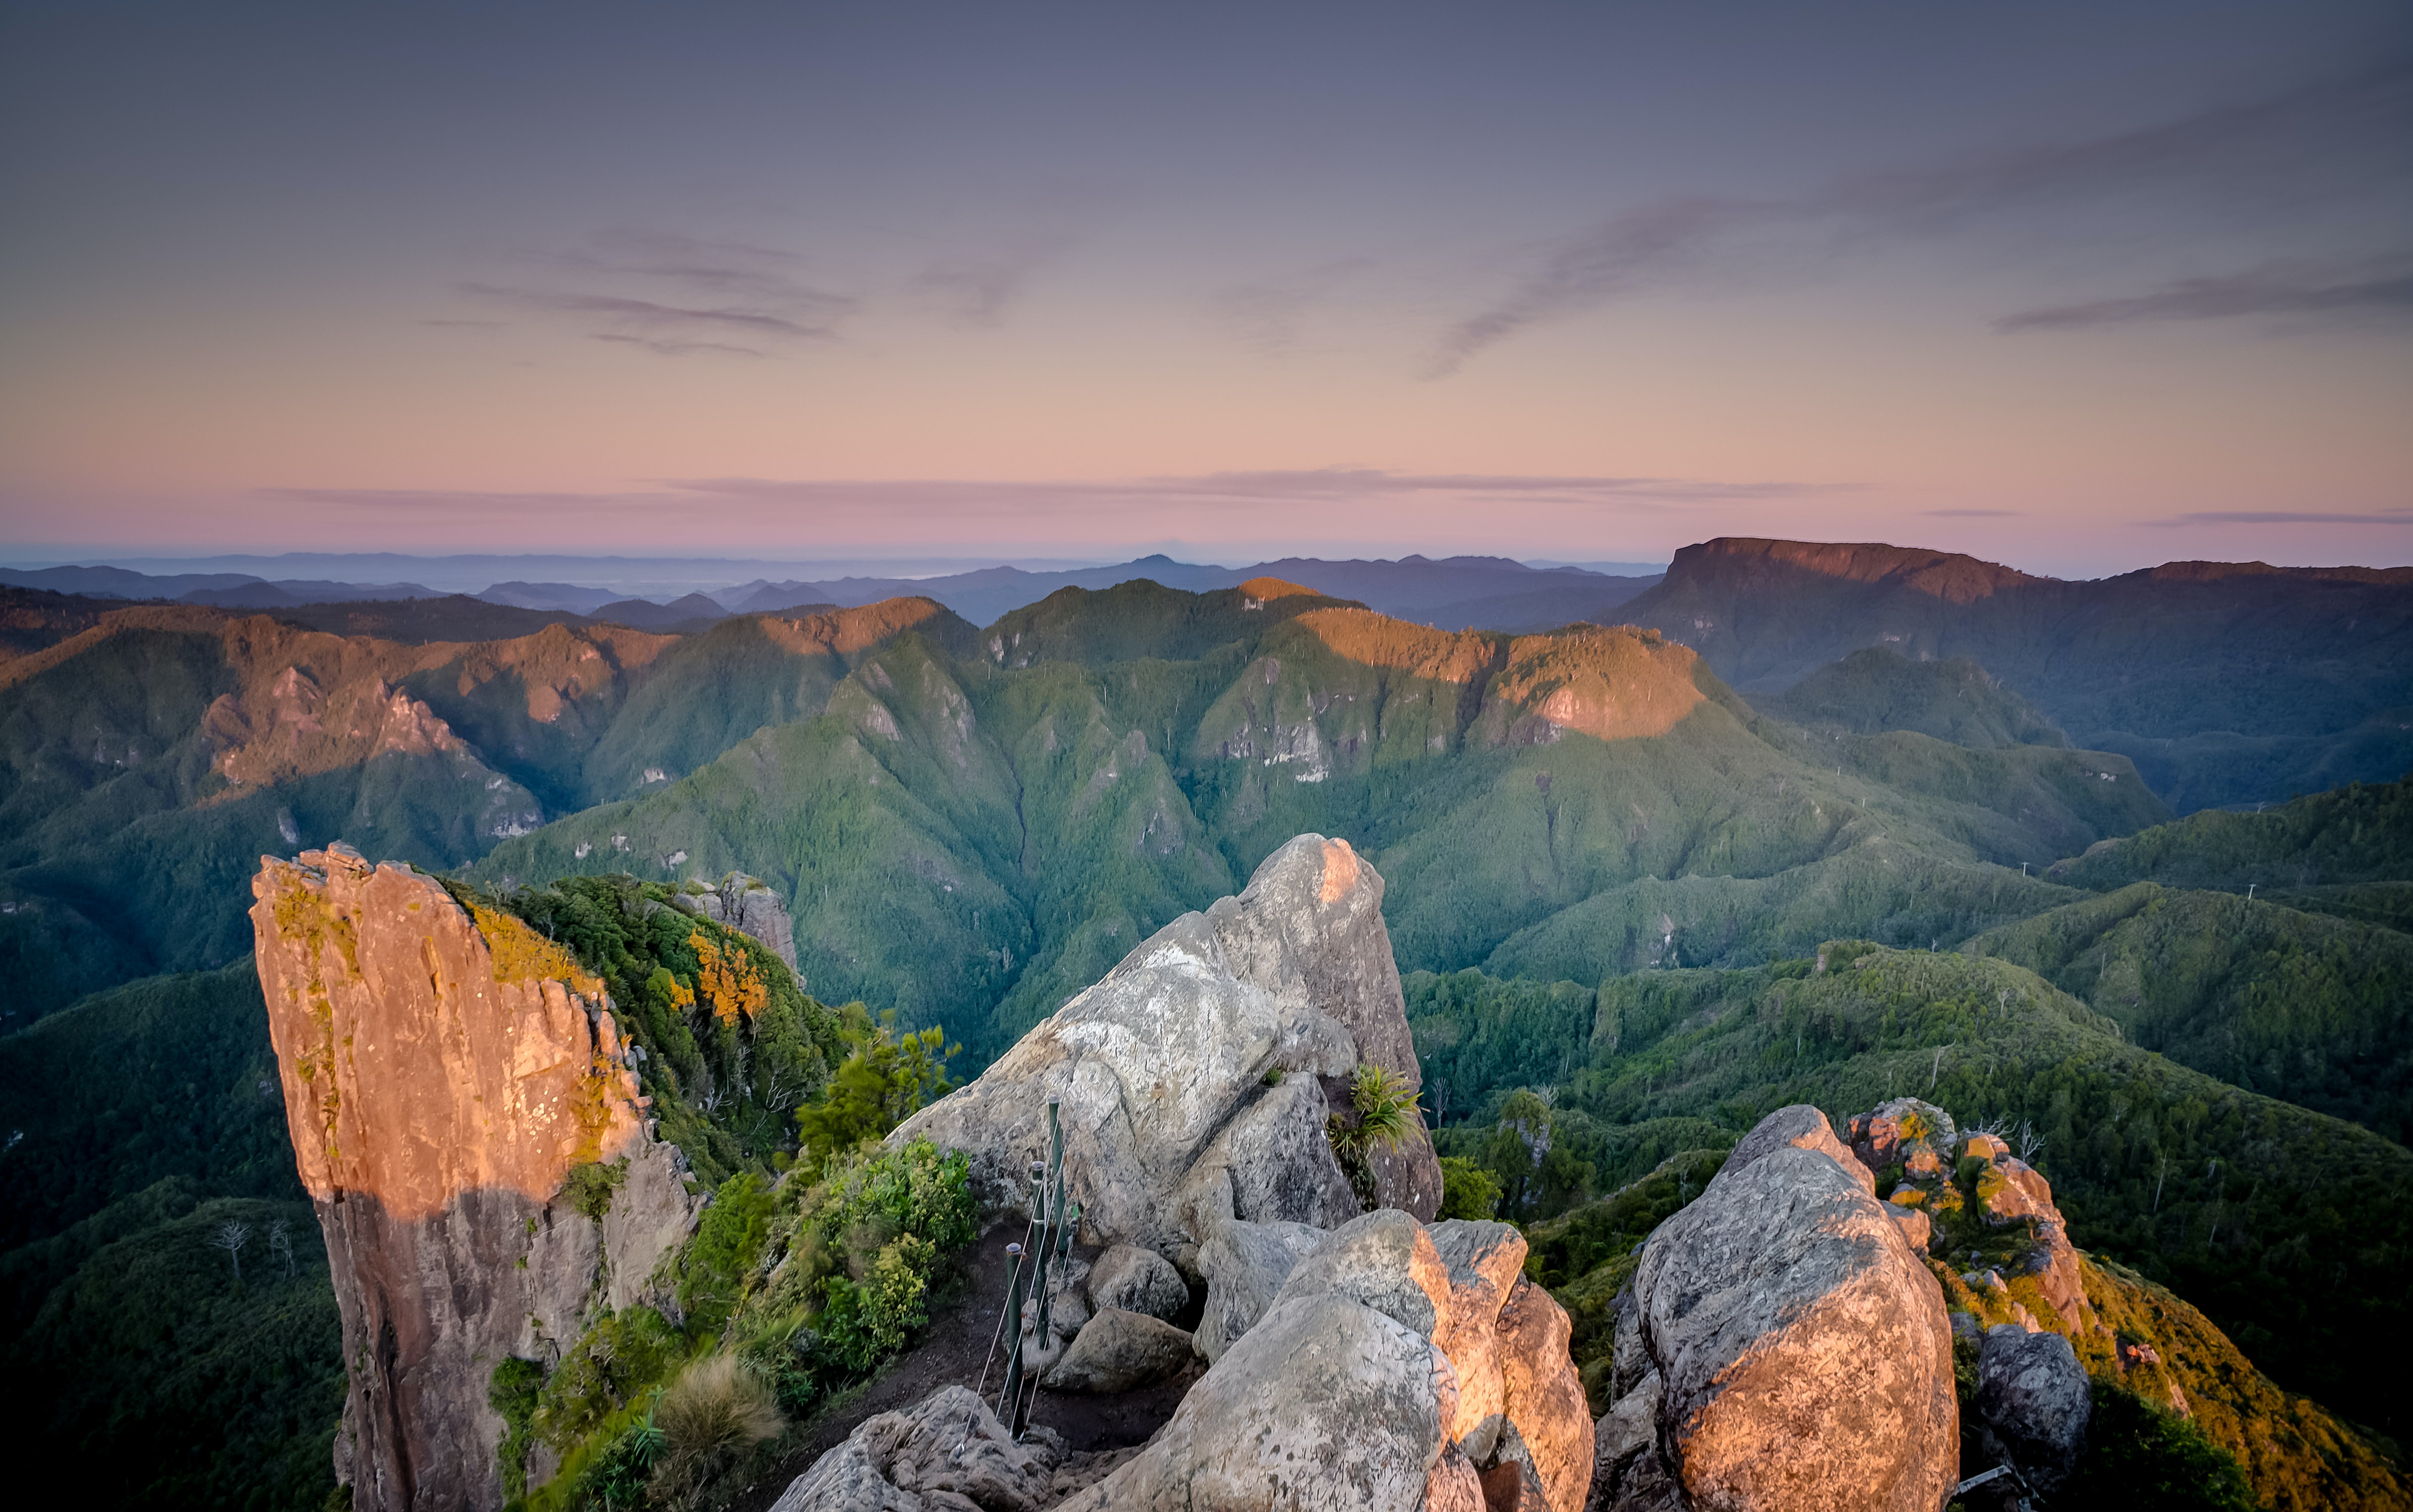 Sunrise over a mountain landscape with green hillsides